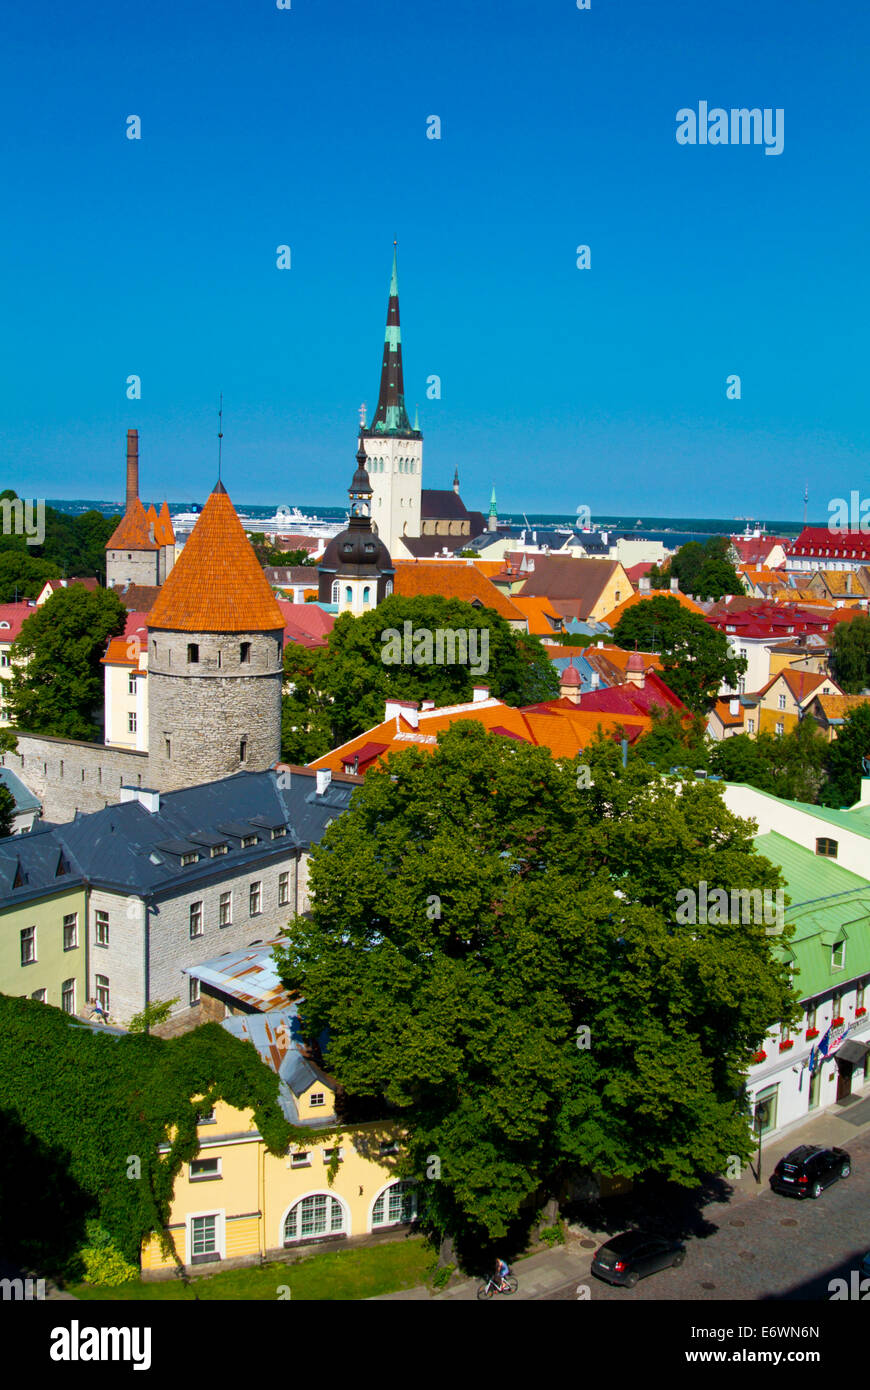 Old town, Tallinn, Estonia, Baltic states, Europe - Stock Image